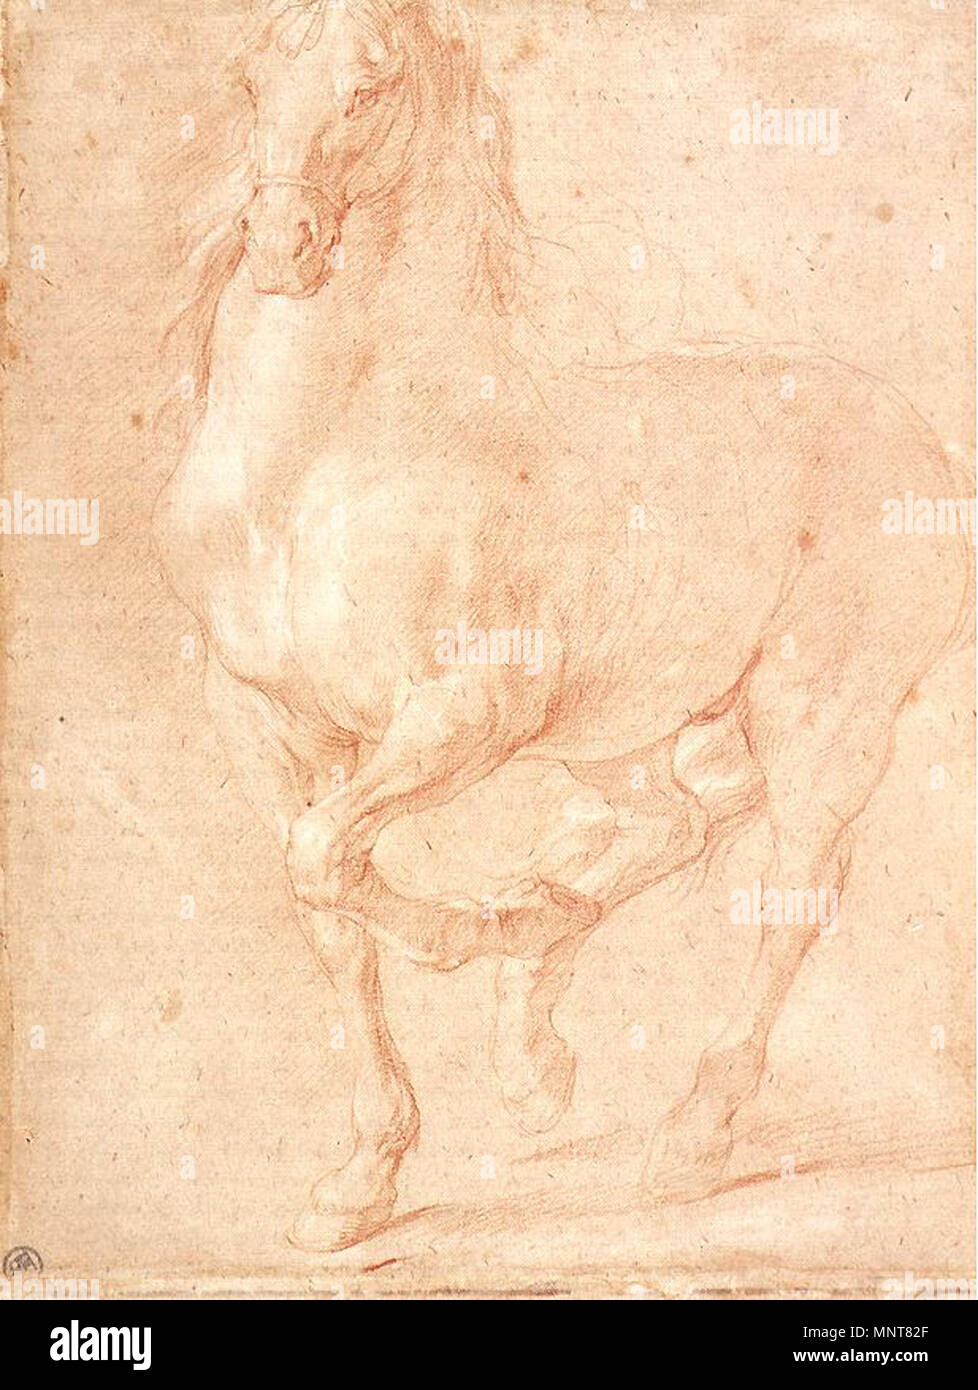 Study of a Horse   second half of 17th century.   988 Pierre Puget - Study of a Horse - WGA18480 - Stock Image